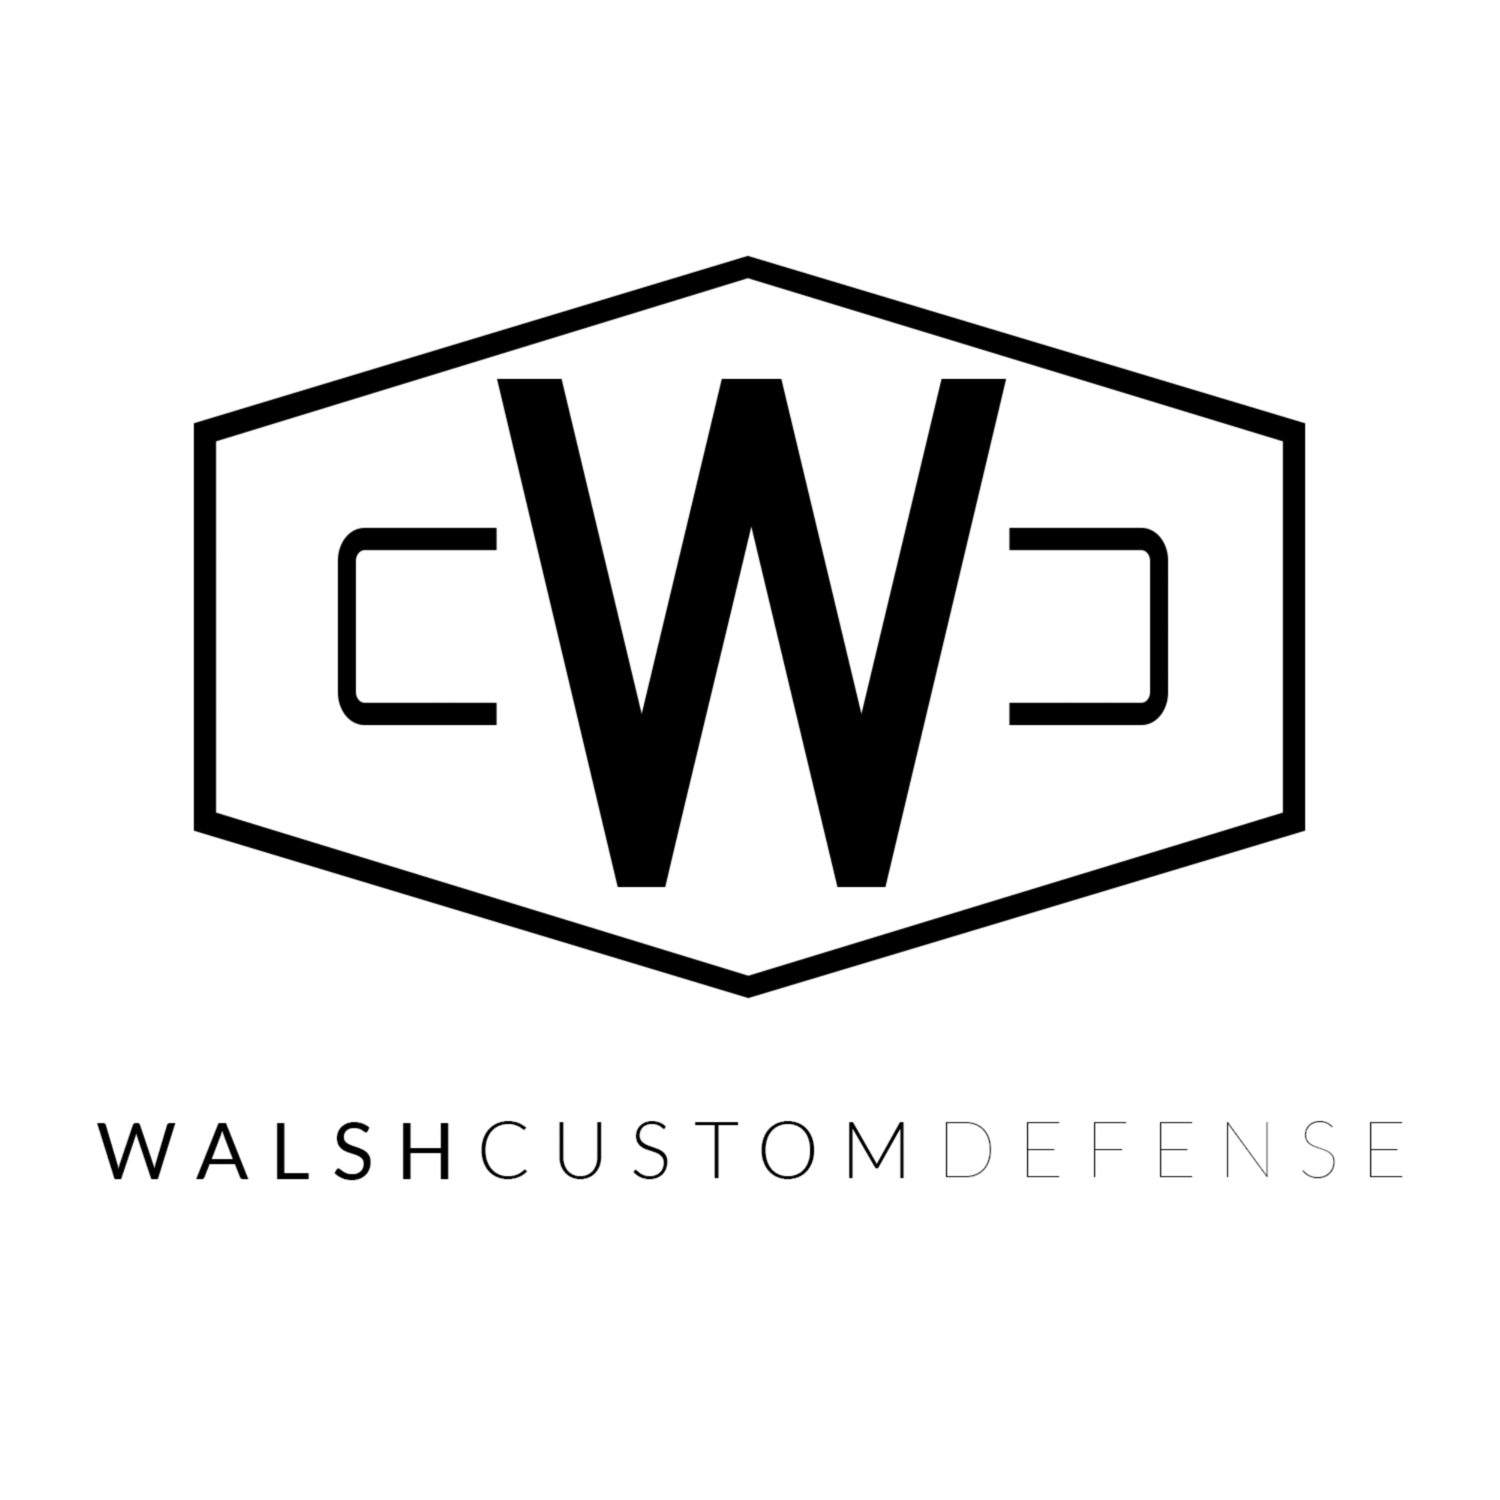 Walsh Custom Defense